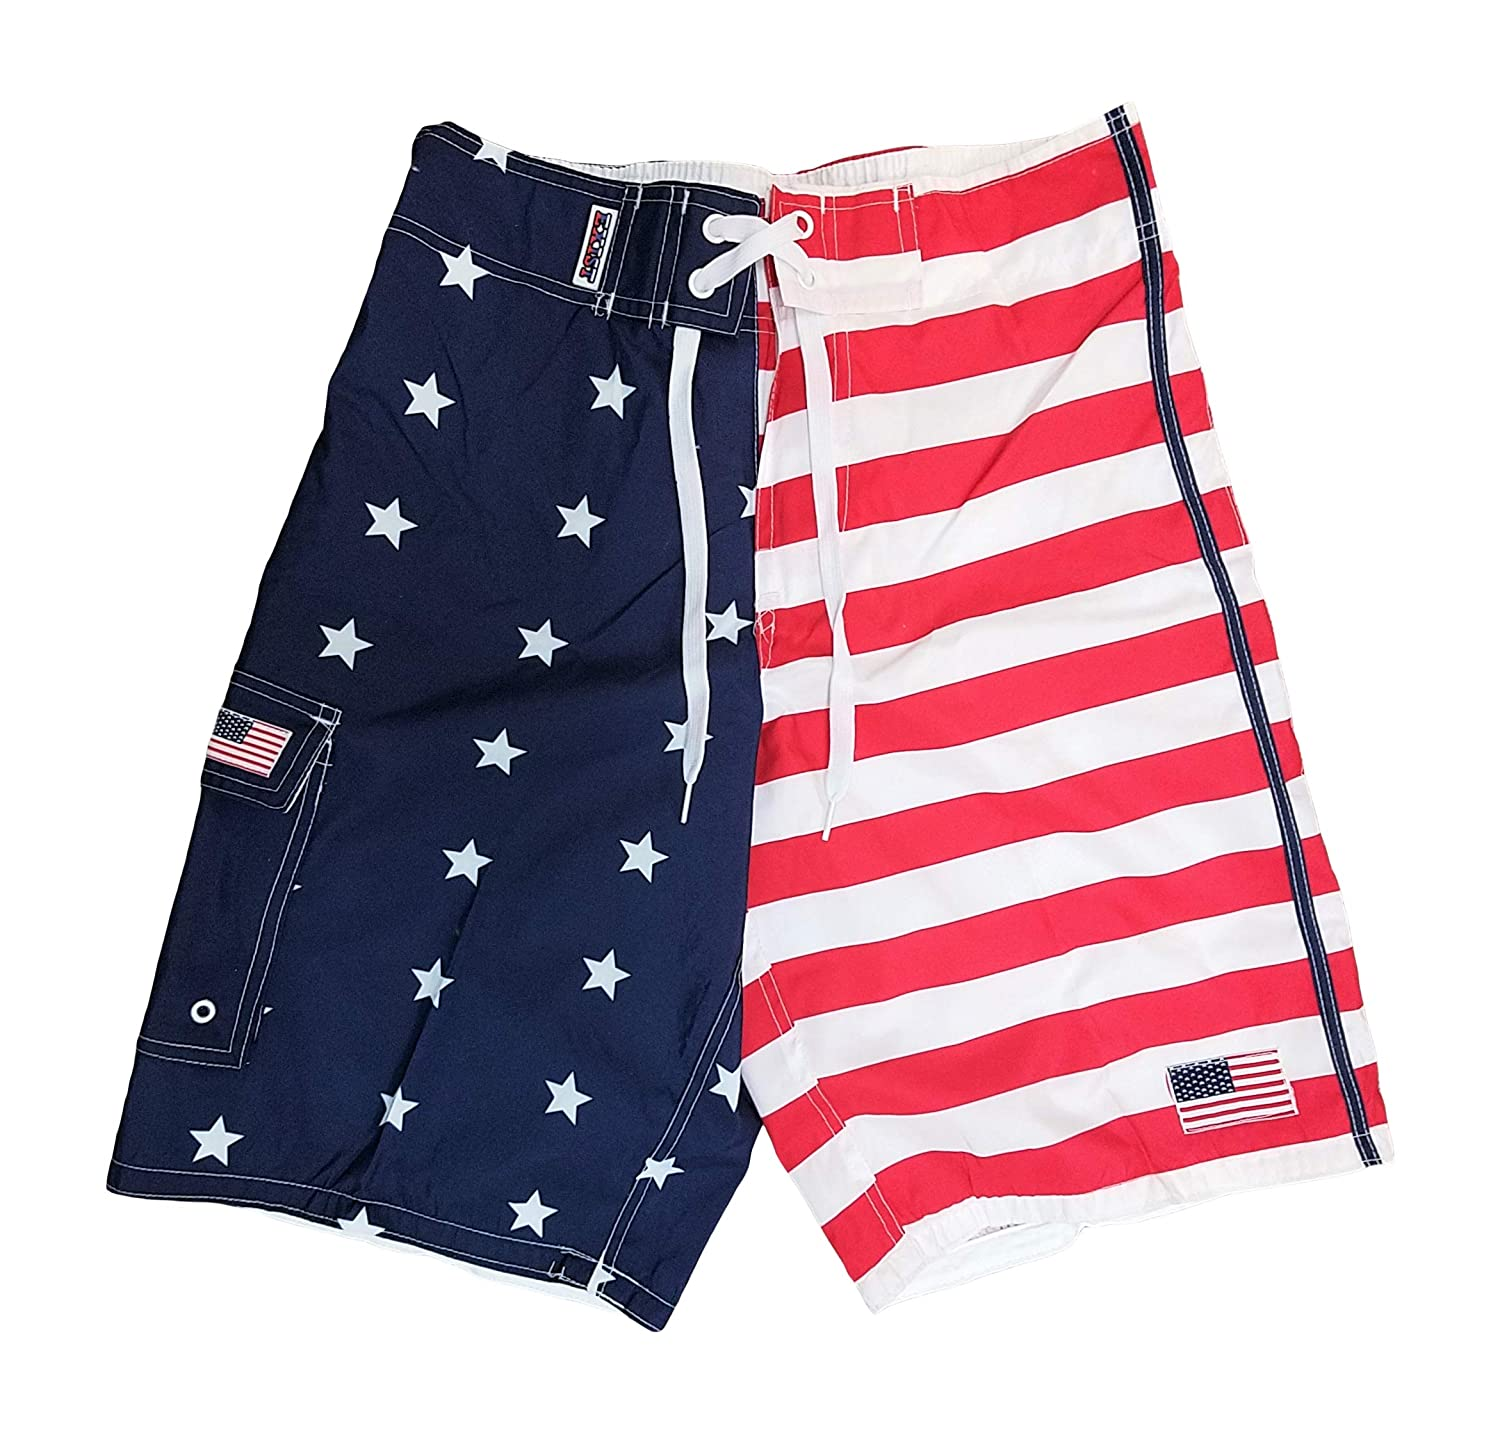 f484a74cd0 Exist American Flag Shorts Men - Bathing Suit American Flag Swim Trunks Men  | Amazon.com